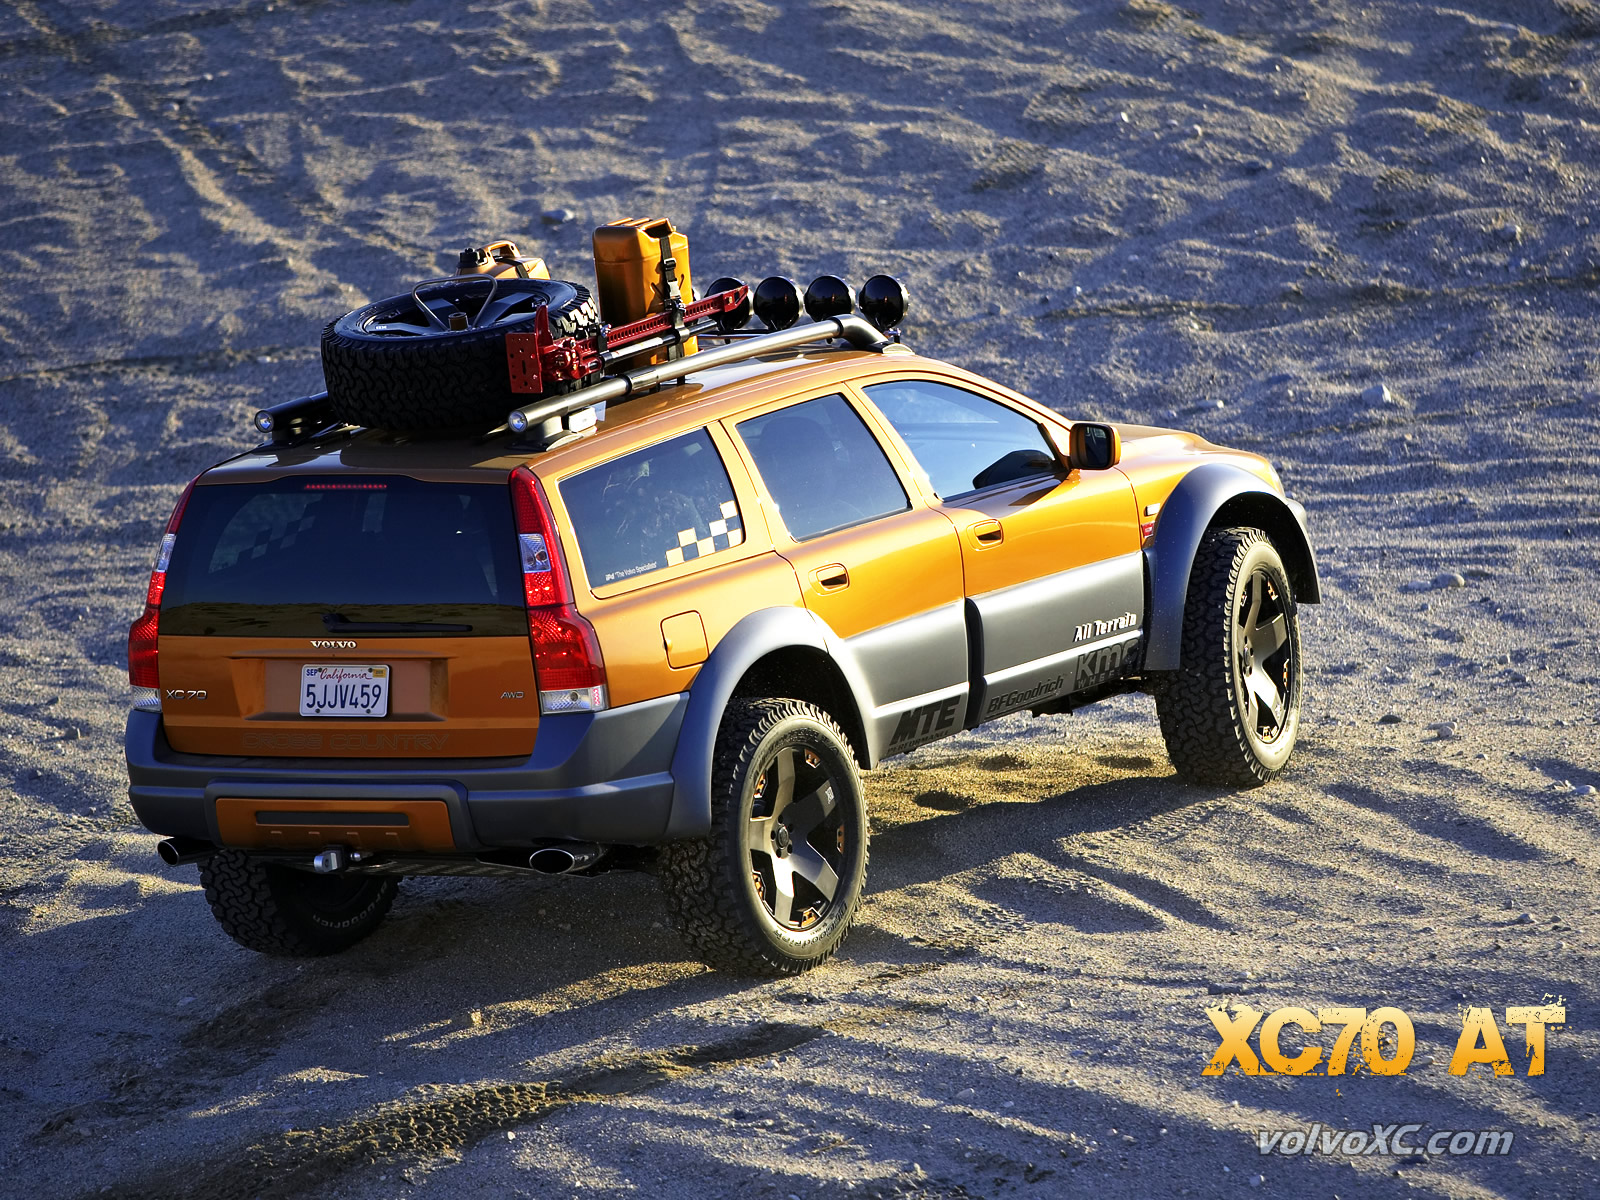 Volvo Cross Country Resources XC70 AT Wallpaper 1600x1200